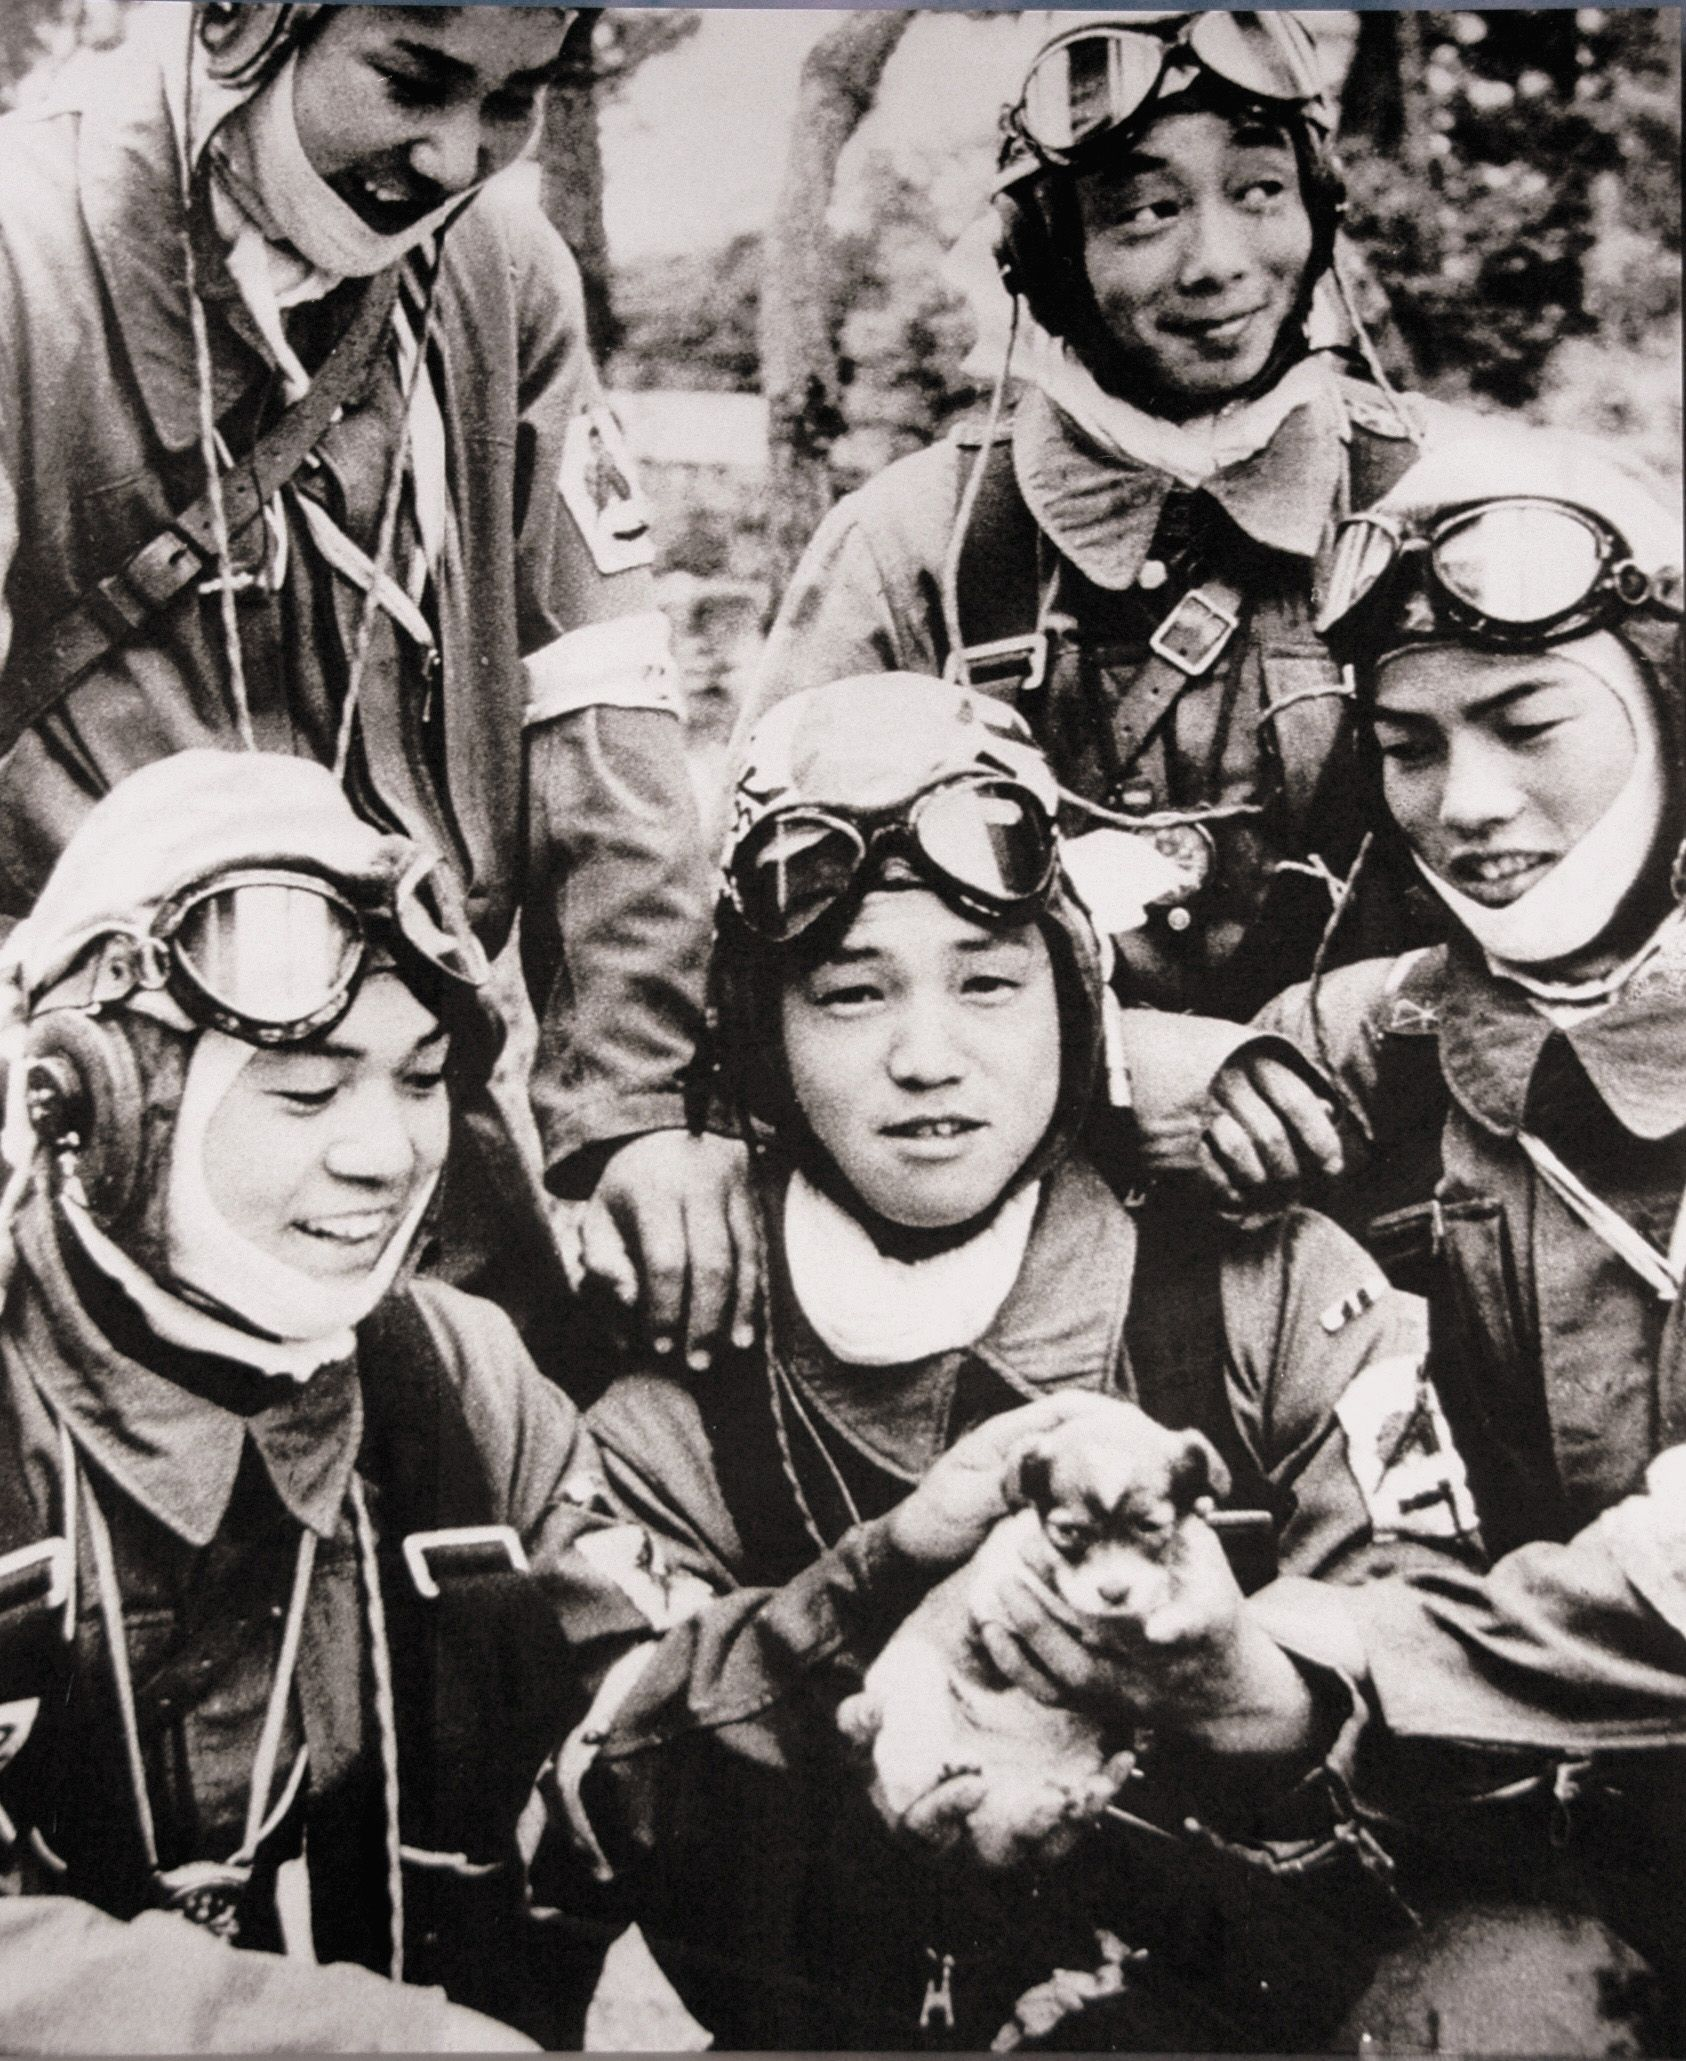 Corporal Yukio Araki holding a puppy, with four other pilots of the 72nd Shinbu Squadron at Bansei, Kagoshima (May 26, 1945). Araki died the following day in a suicide attack on ships near Okinawa.